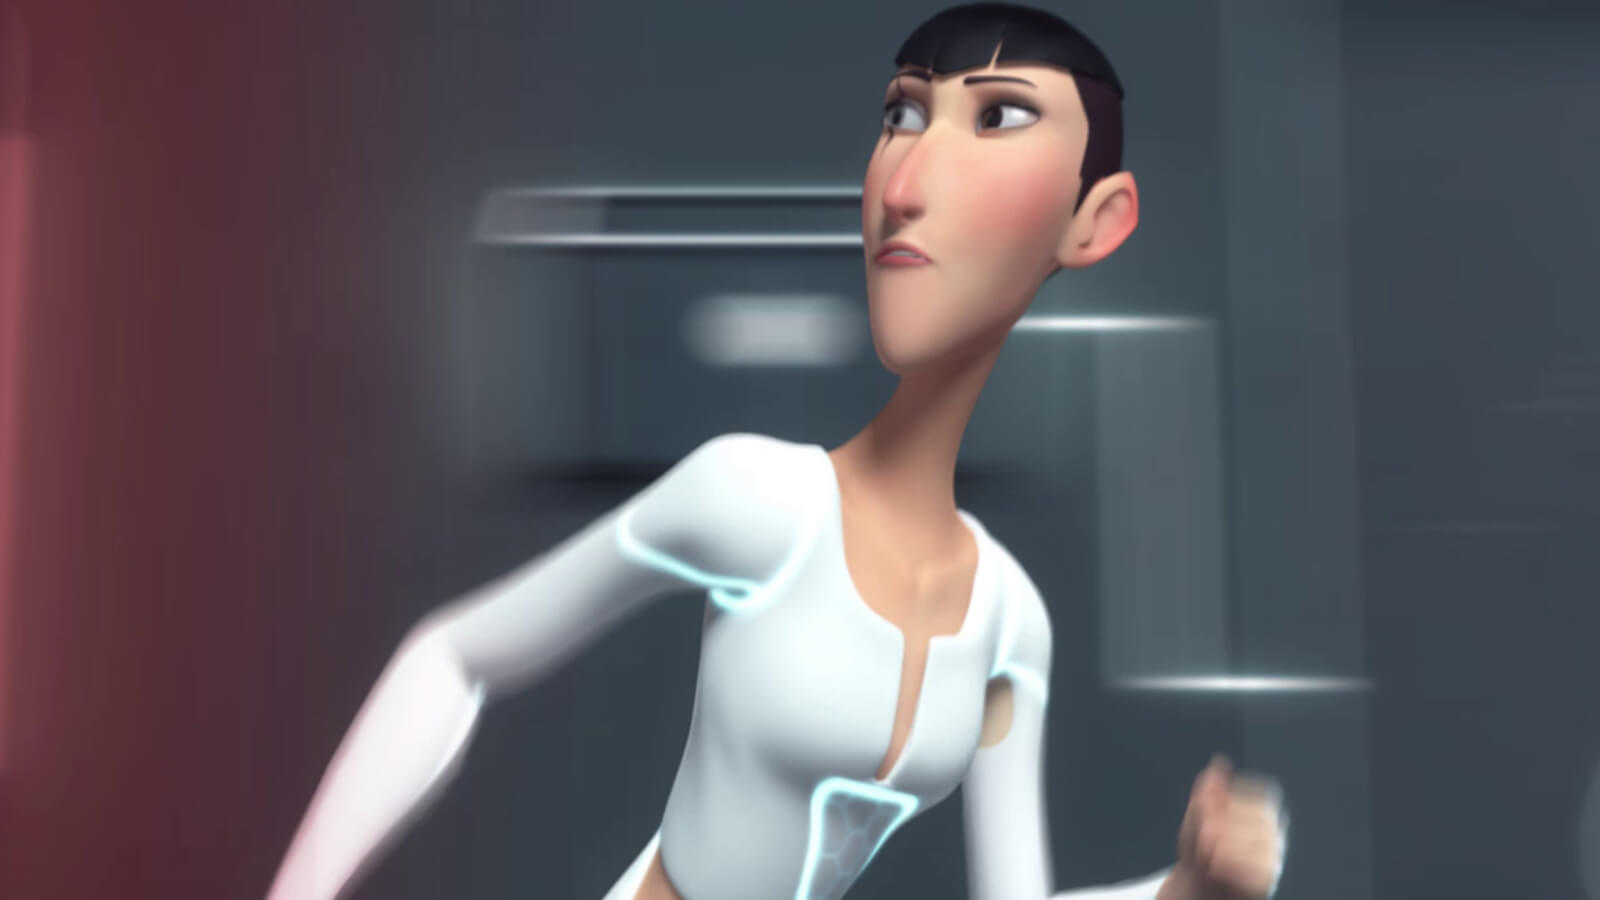 A tall, thin woman with a scar over her eye with futuristic white clothing runs away, looking behind her shoulder